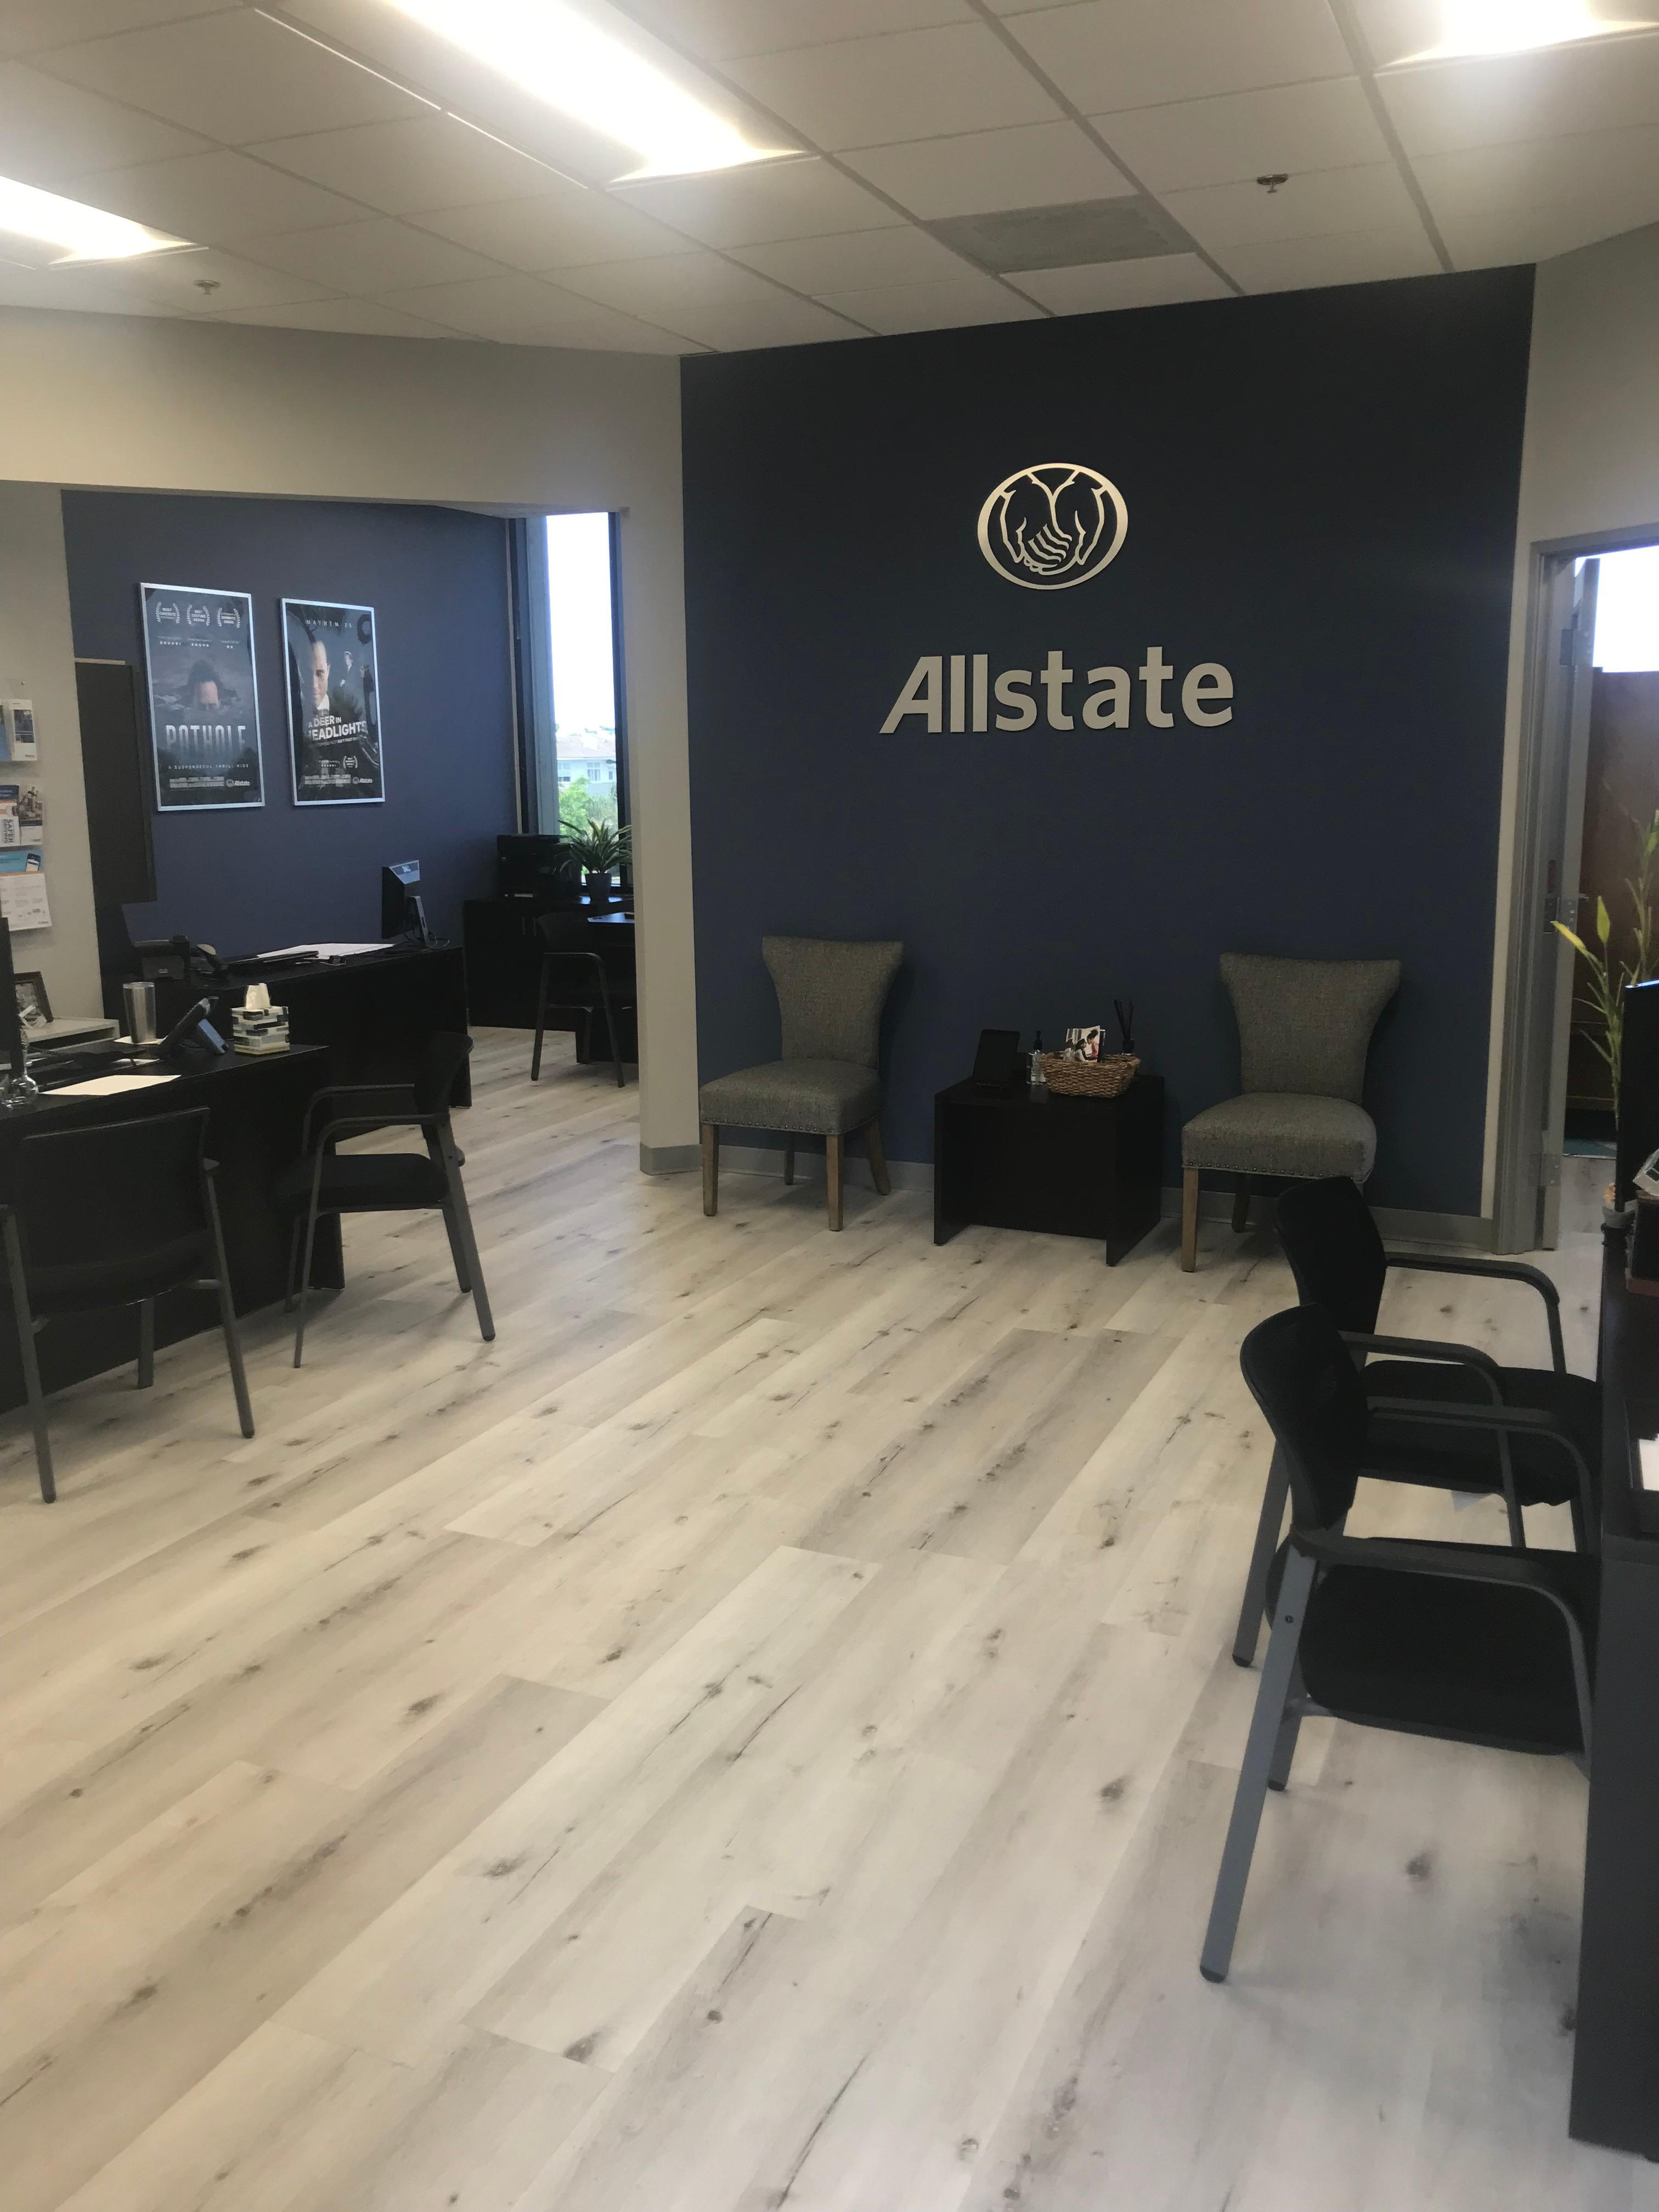 Allstate Insurance Agent: SoCal Insurance & Financial Services Inc